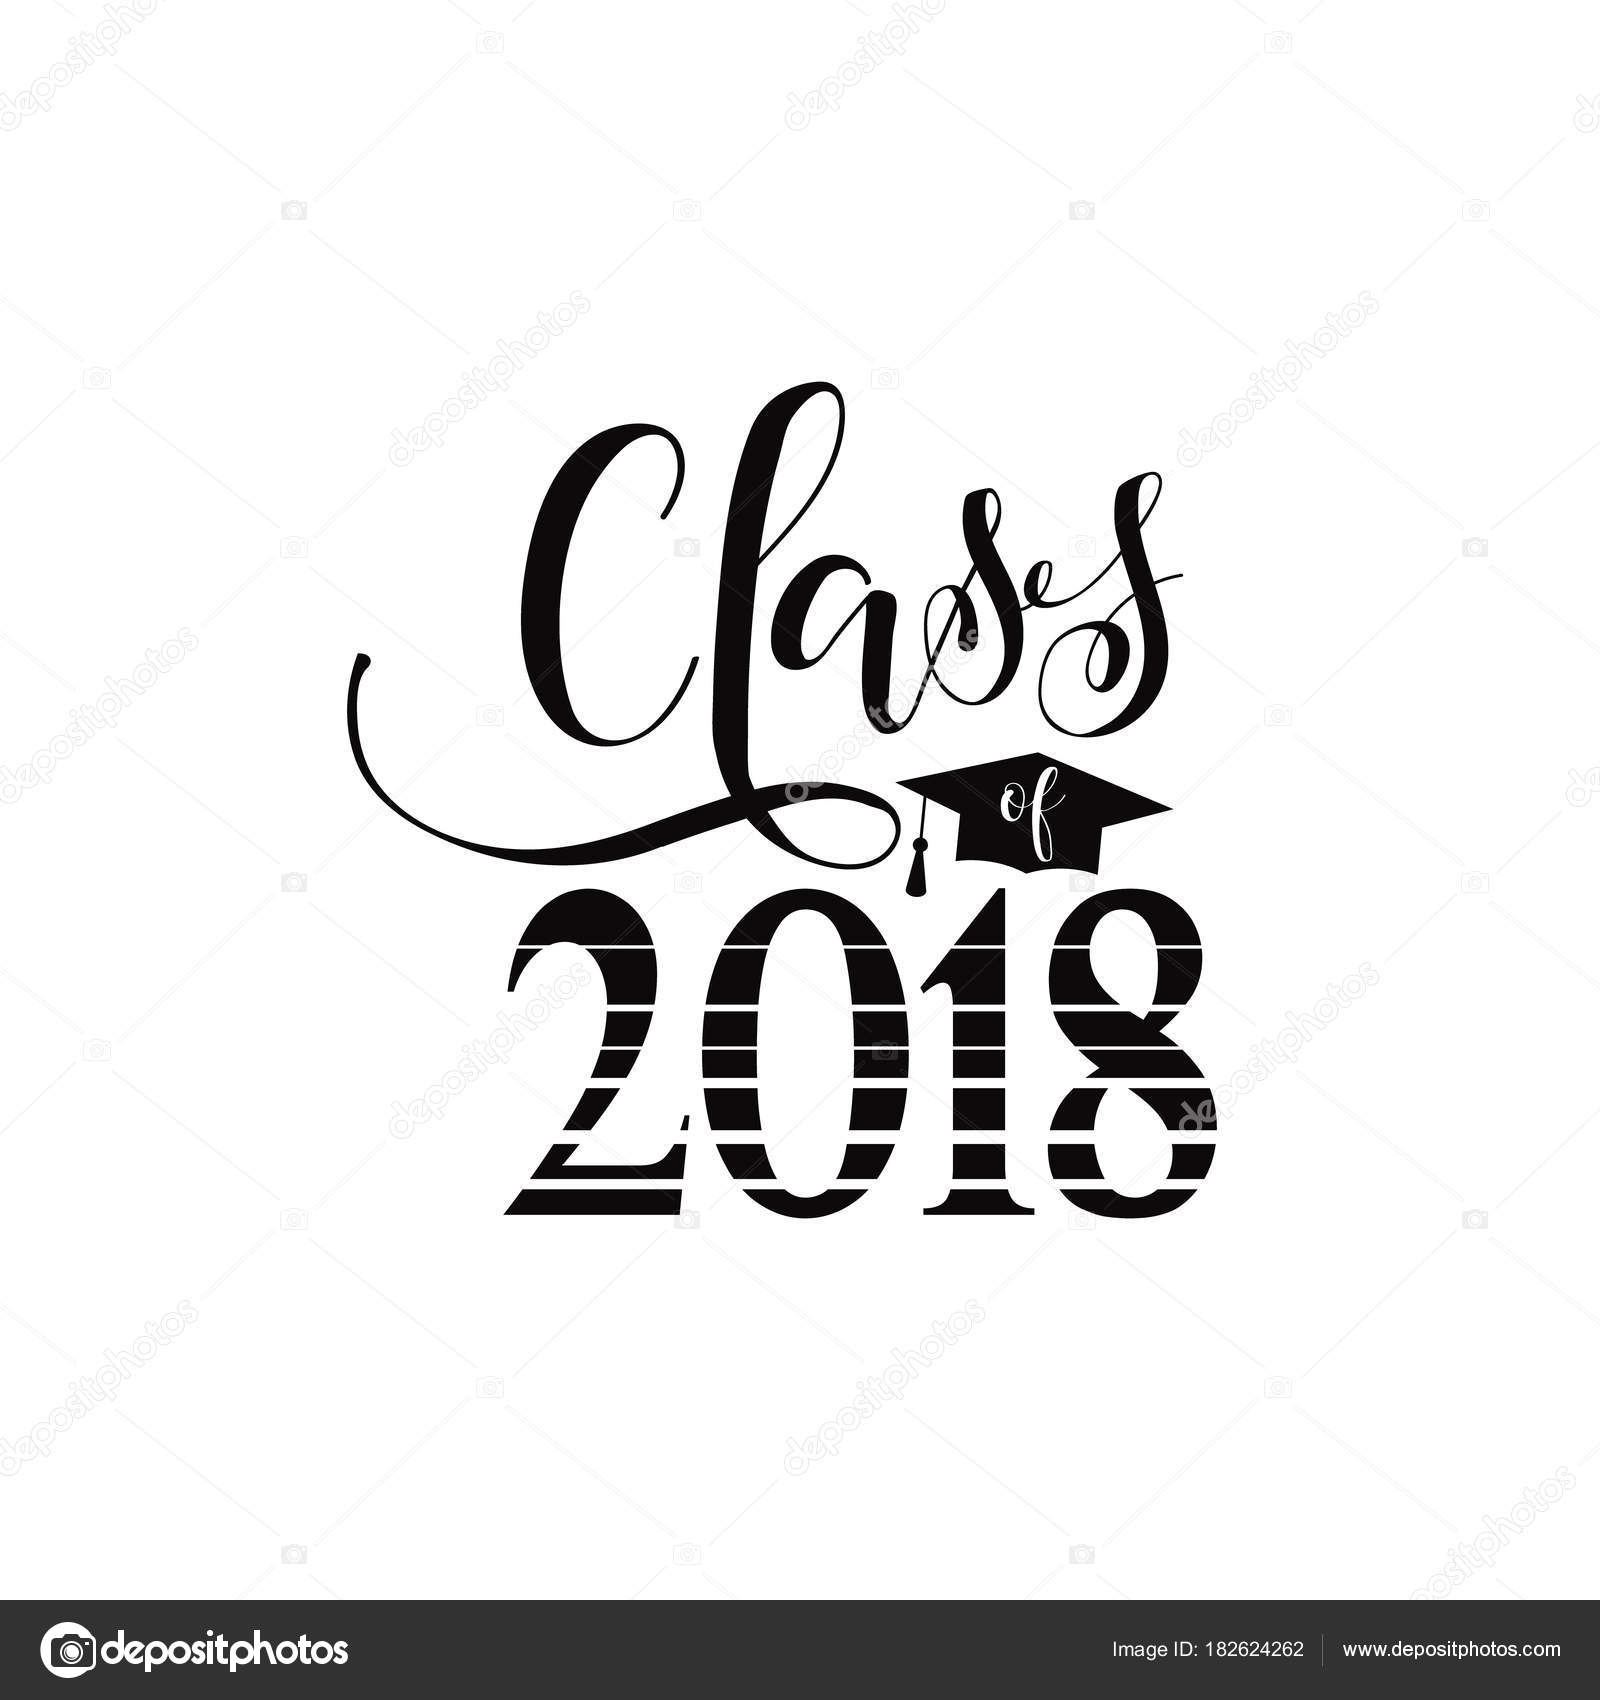 vector illustration of a graduating class in 2018